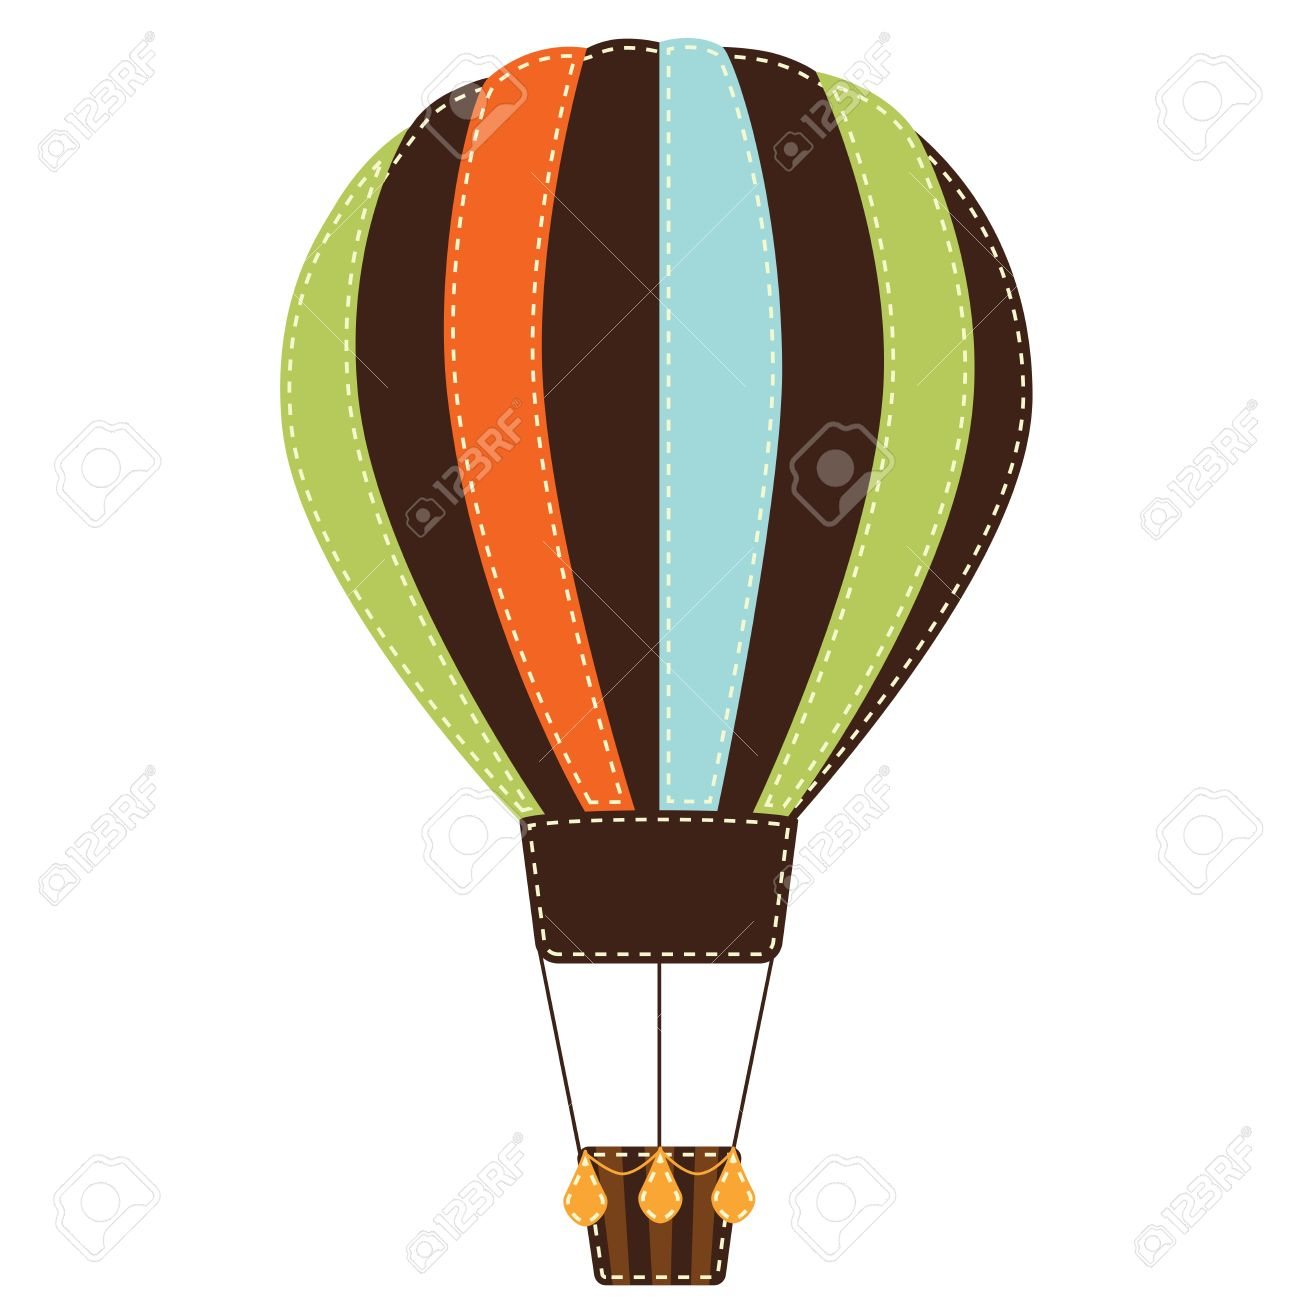 1300x1300 Vintage Or Retro Hot Air Balloon On Transparent Background Royalty